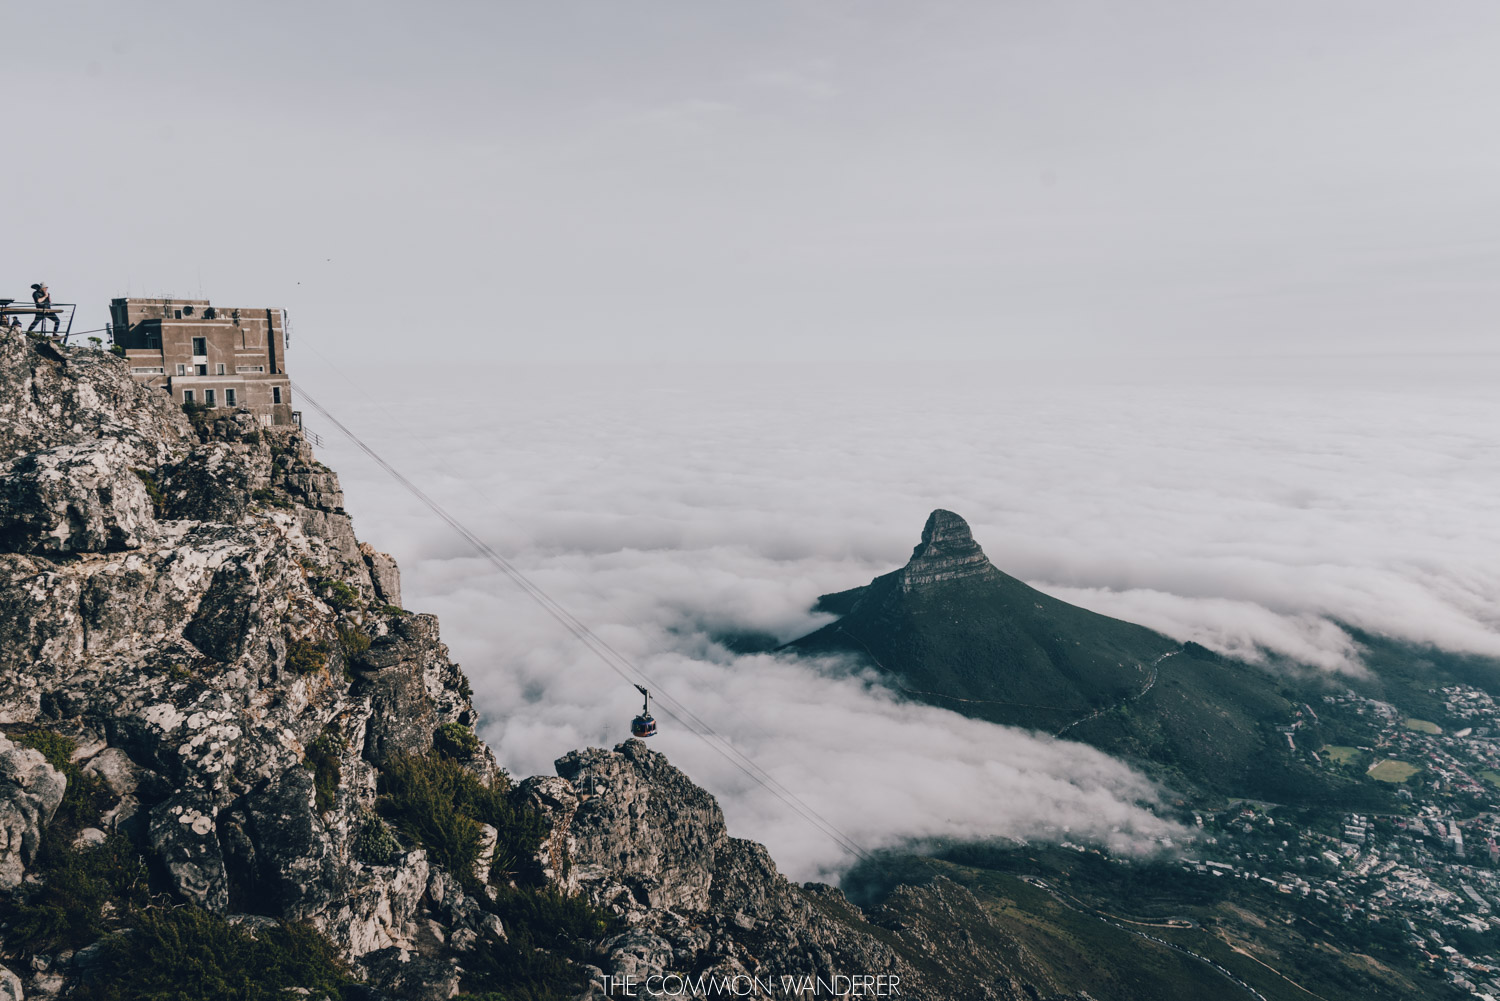 The view onto Cape Town from Table Mountain, South Africa